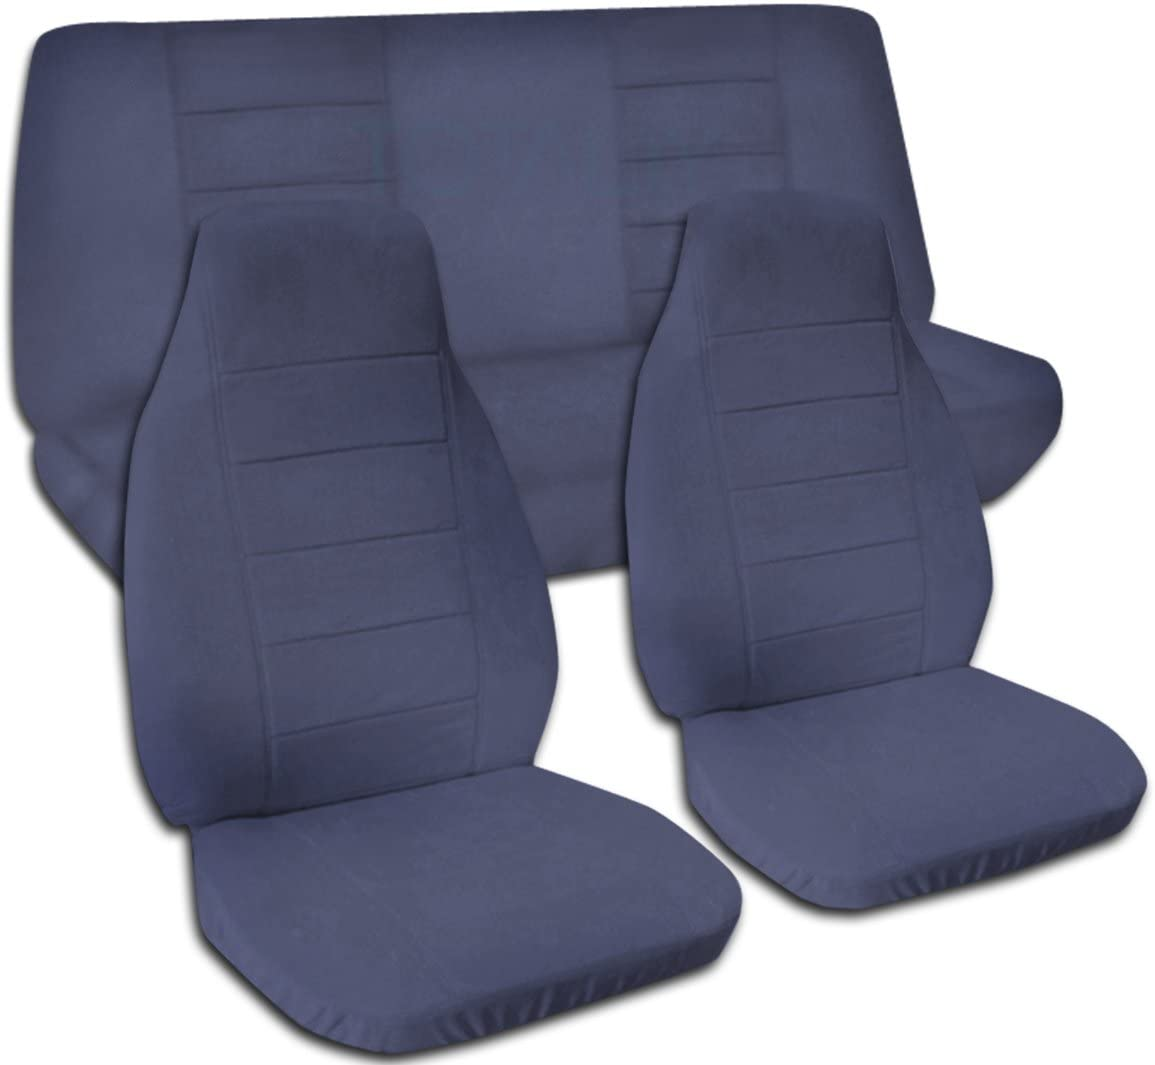 Totally Covers Solid Color Car Seat Covers: Blue Gray - Universal Fit - Full Set - Front Buckets & Rear Bench - Option for Airbag/Seat Belt/Armrest/Release/Lever/Split Compatible